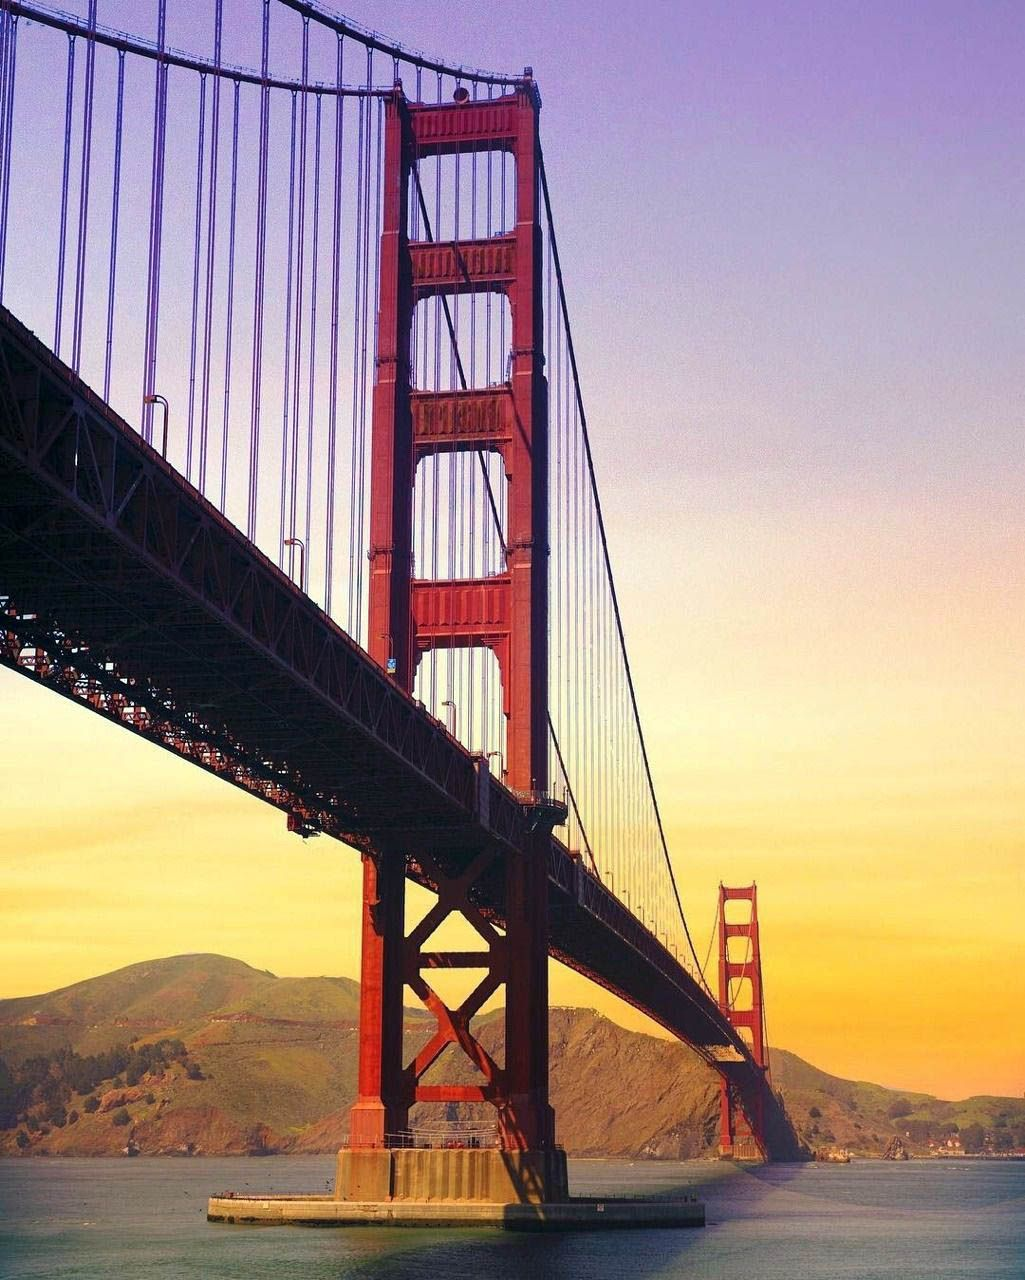 See These Beautiful Restaurants Near Golden Gate Bridge Only On Travelarize